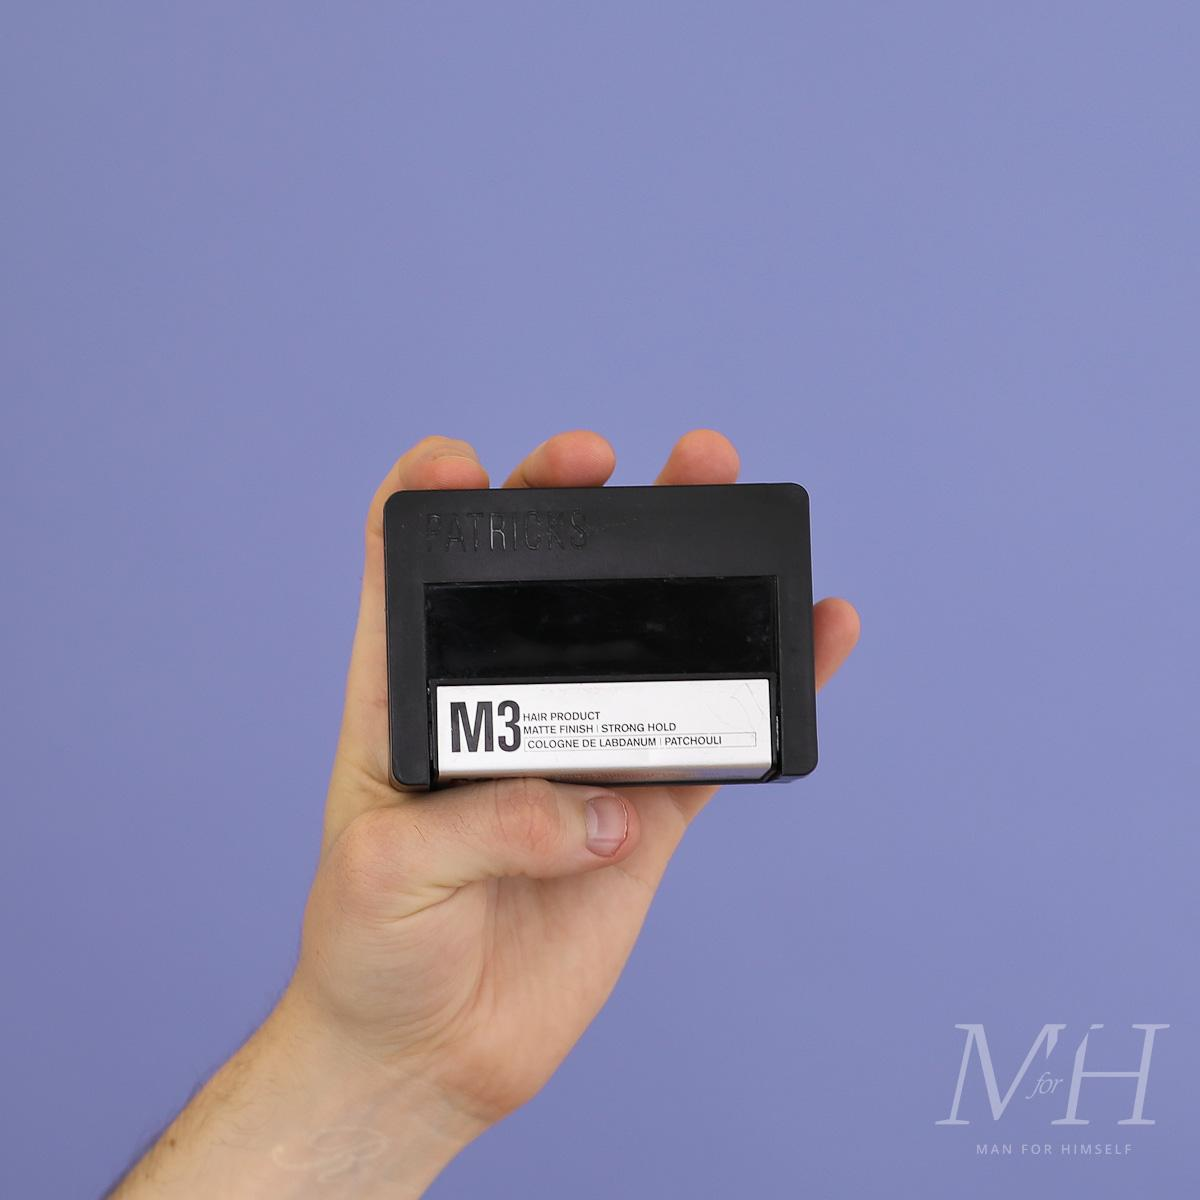 patricks-m3-product-review-man-for-himself